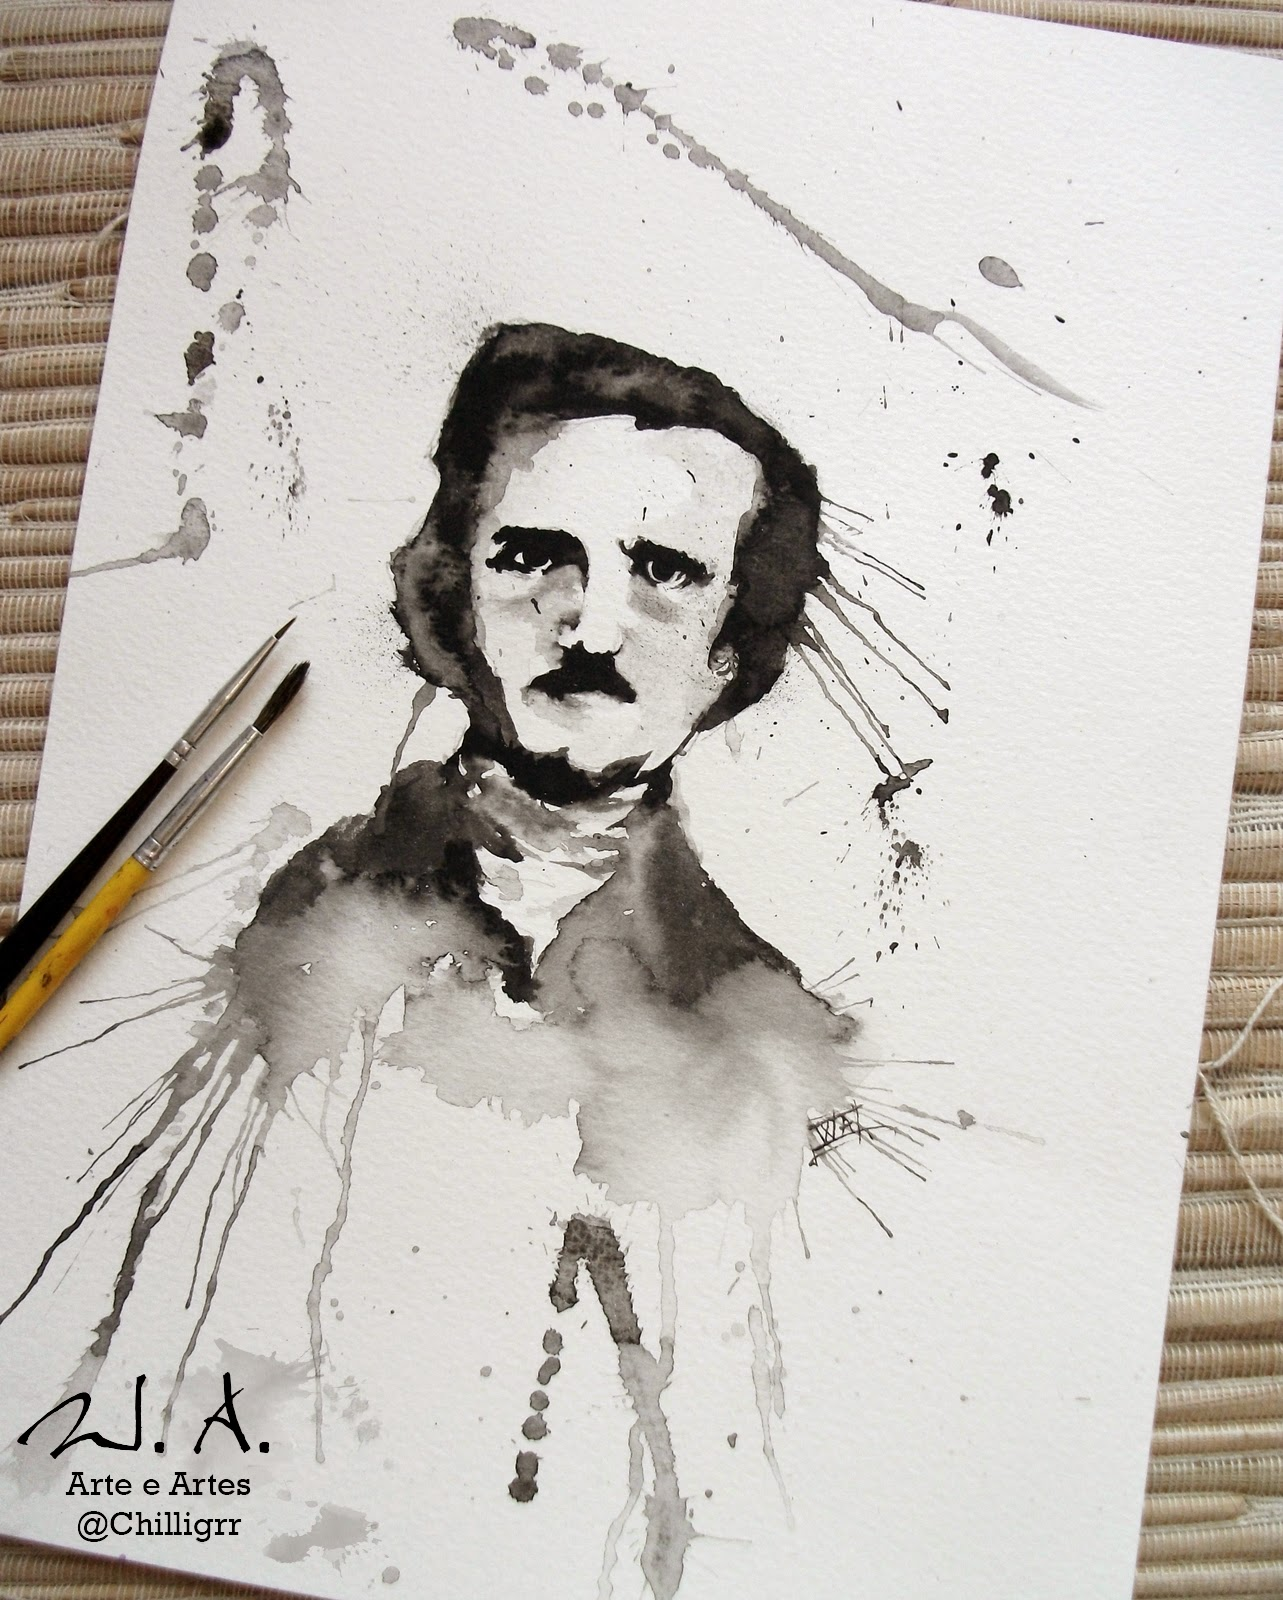 edgar allan poe, edgar allan poe painting, watercolor, watercolor painting, watercolor tattoo, painting, arte, art, pintura, aquarela, pintura com aquarela, w.albuquerque, chilligrr